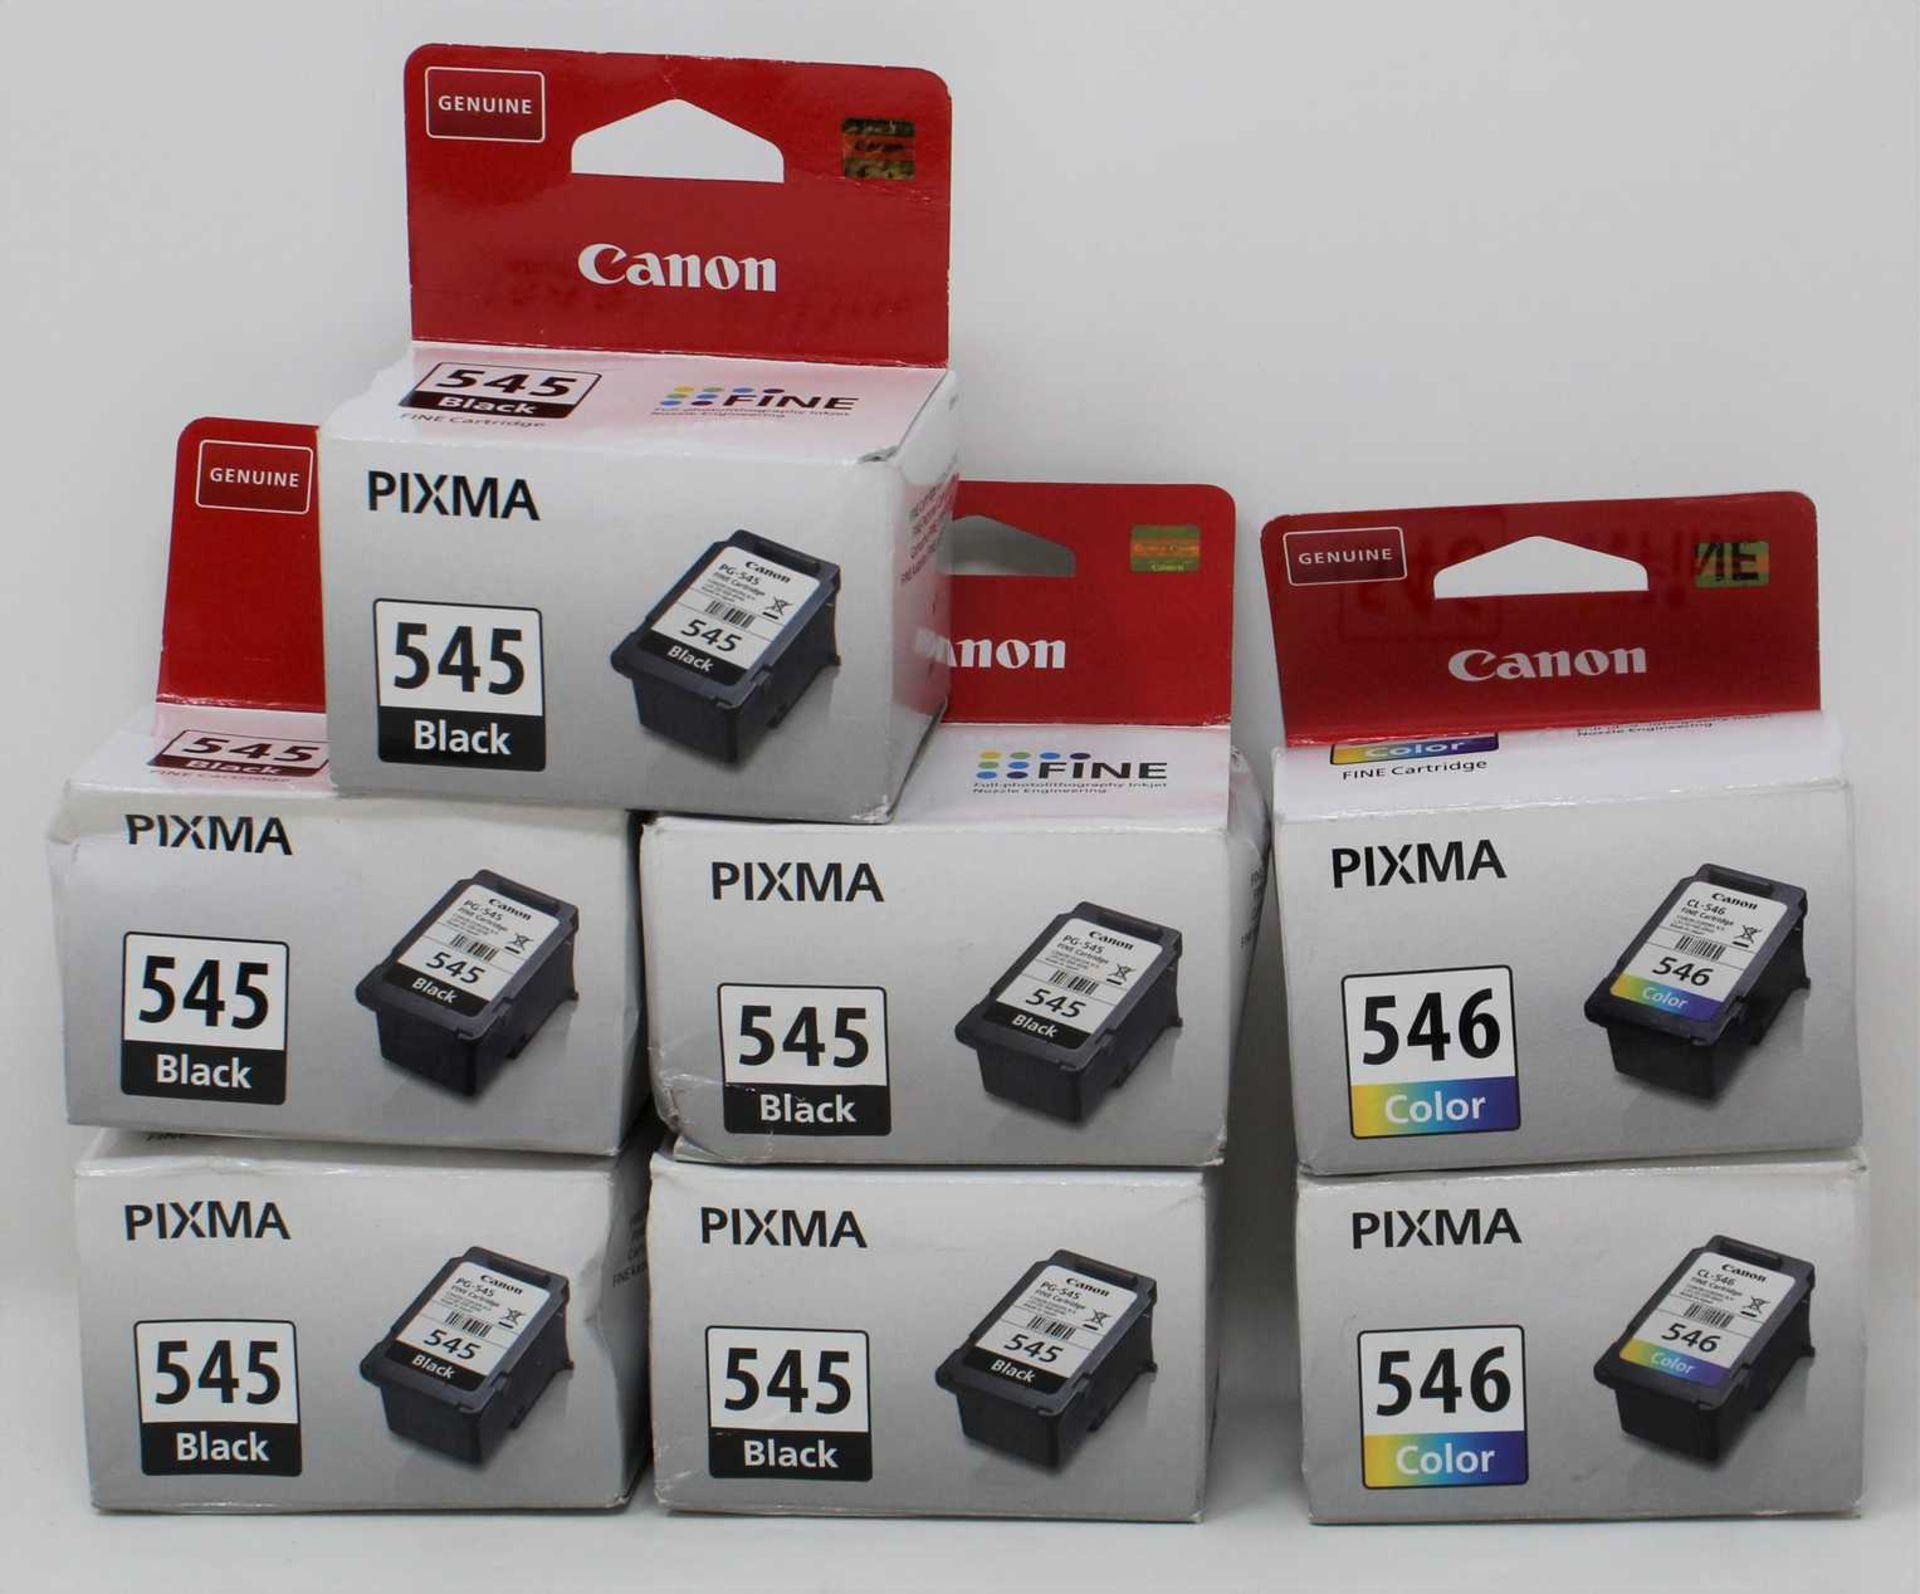 Five boxed as new Canon Pixma 545 Black Ink Cartridges (PG-545 8ml) and two boxed as new Canon Pixma